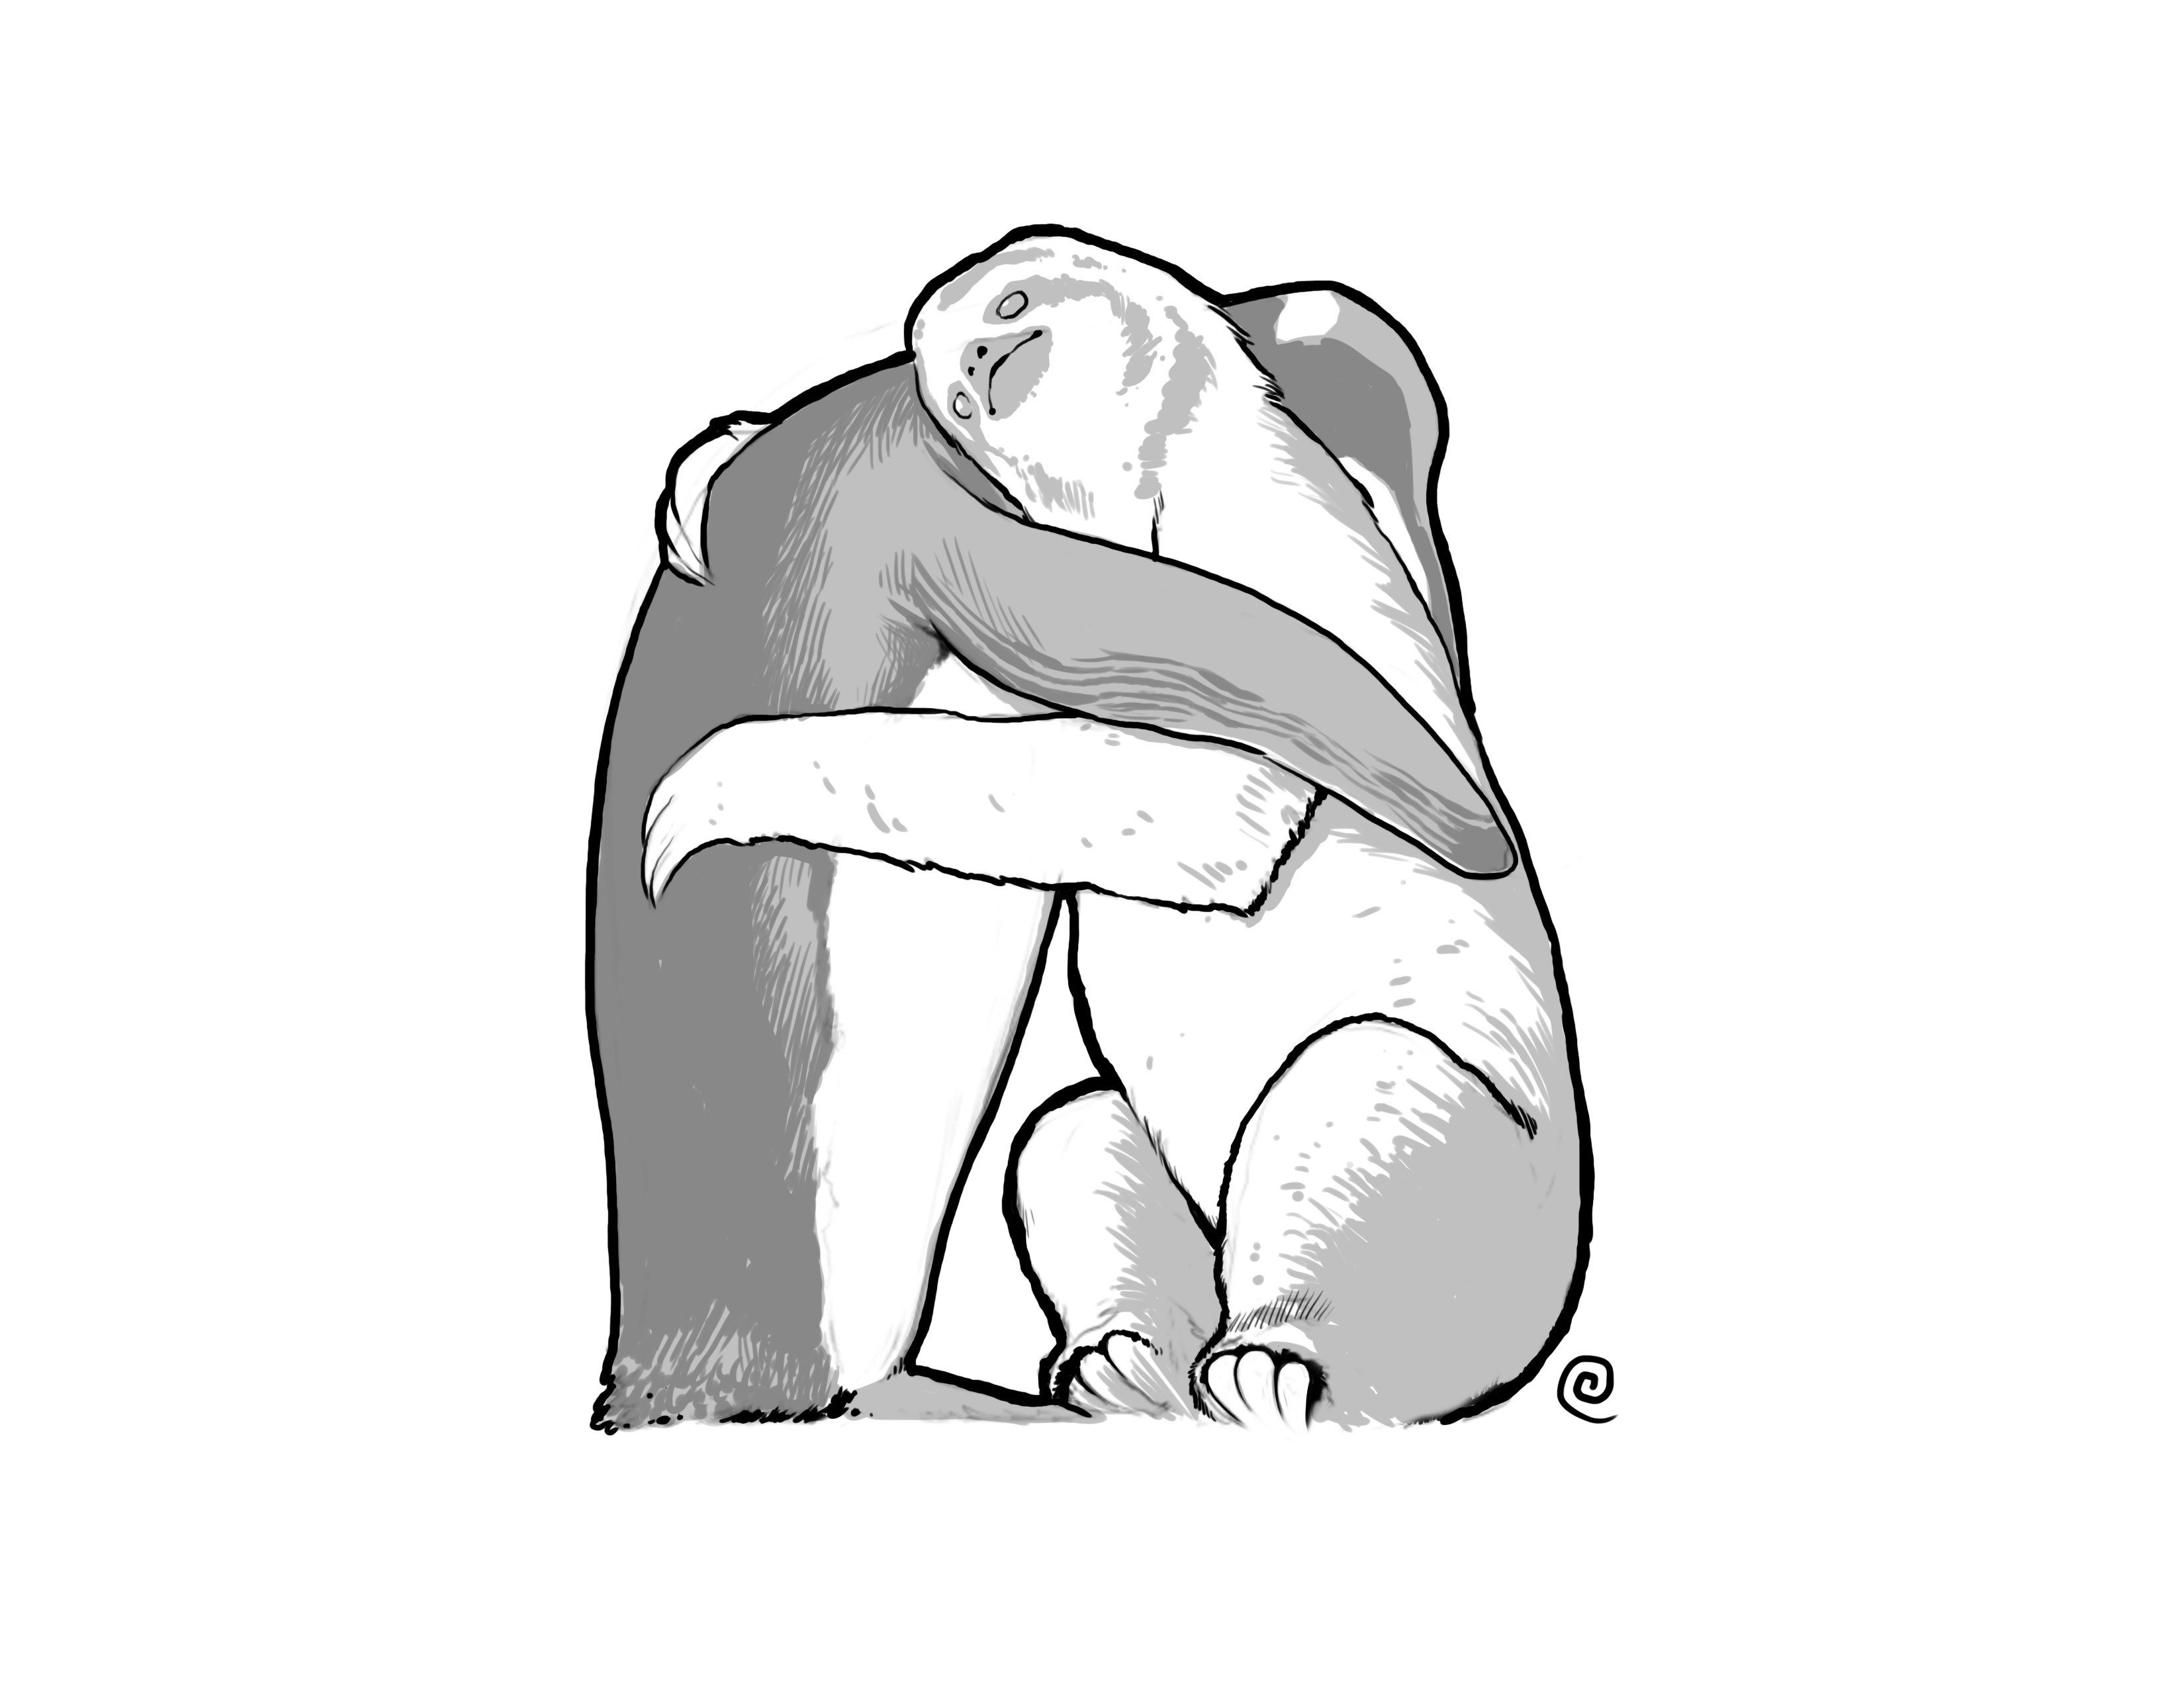 3300x2549 Had Friends And The Internet Draw Me A Sloth Hugging A Penguin. My